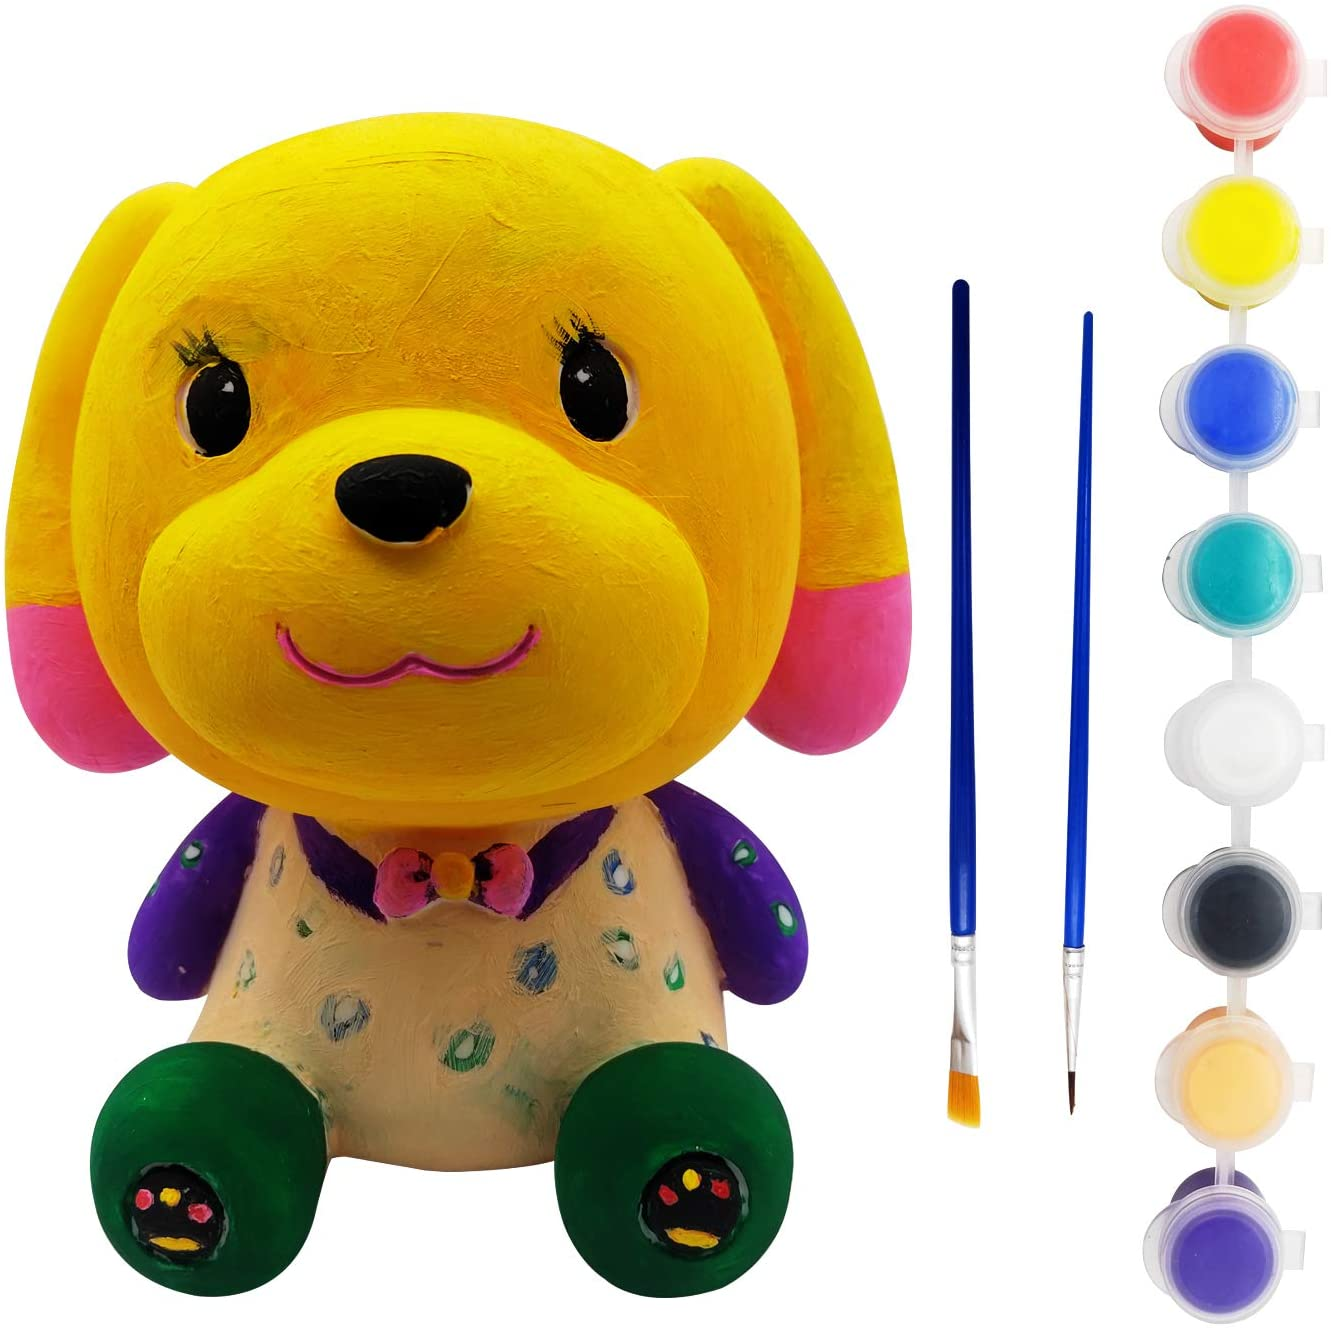 LUCUNSTAR Diamond Oil Painting Kits Money Bank for Girls Dog Paint Your Own Coin Bank for Kids